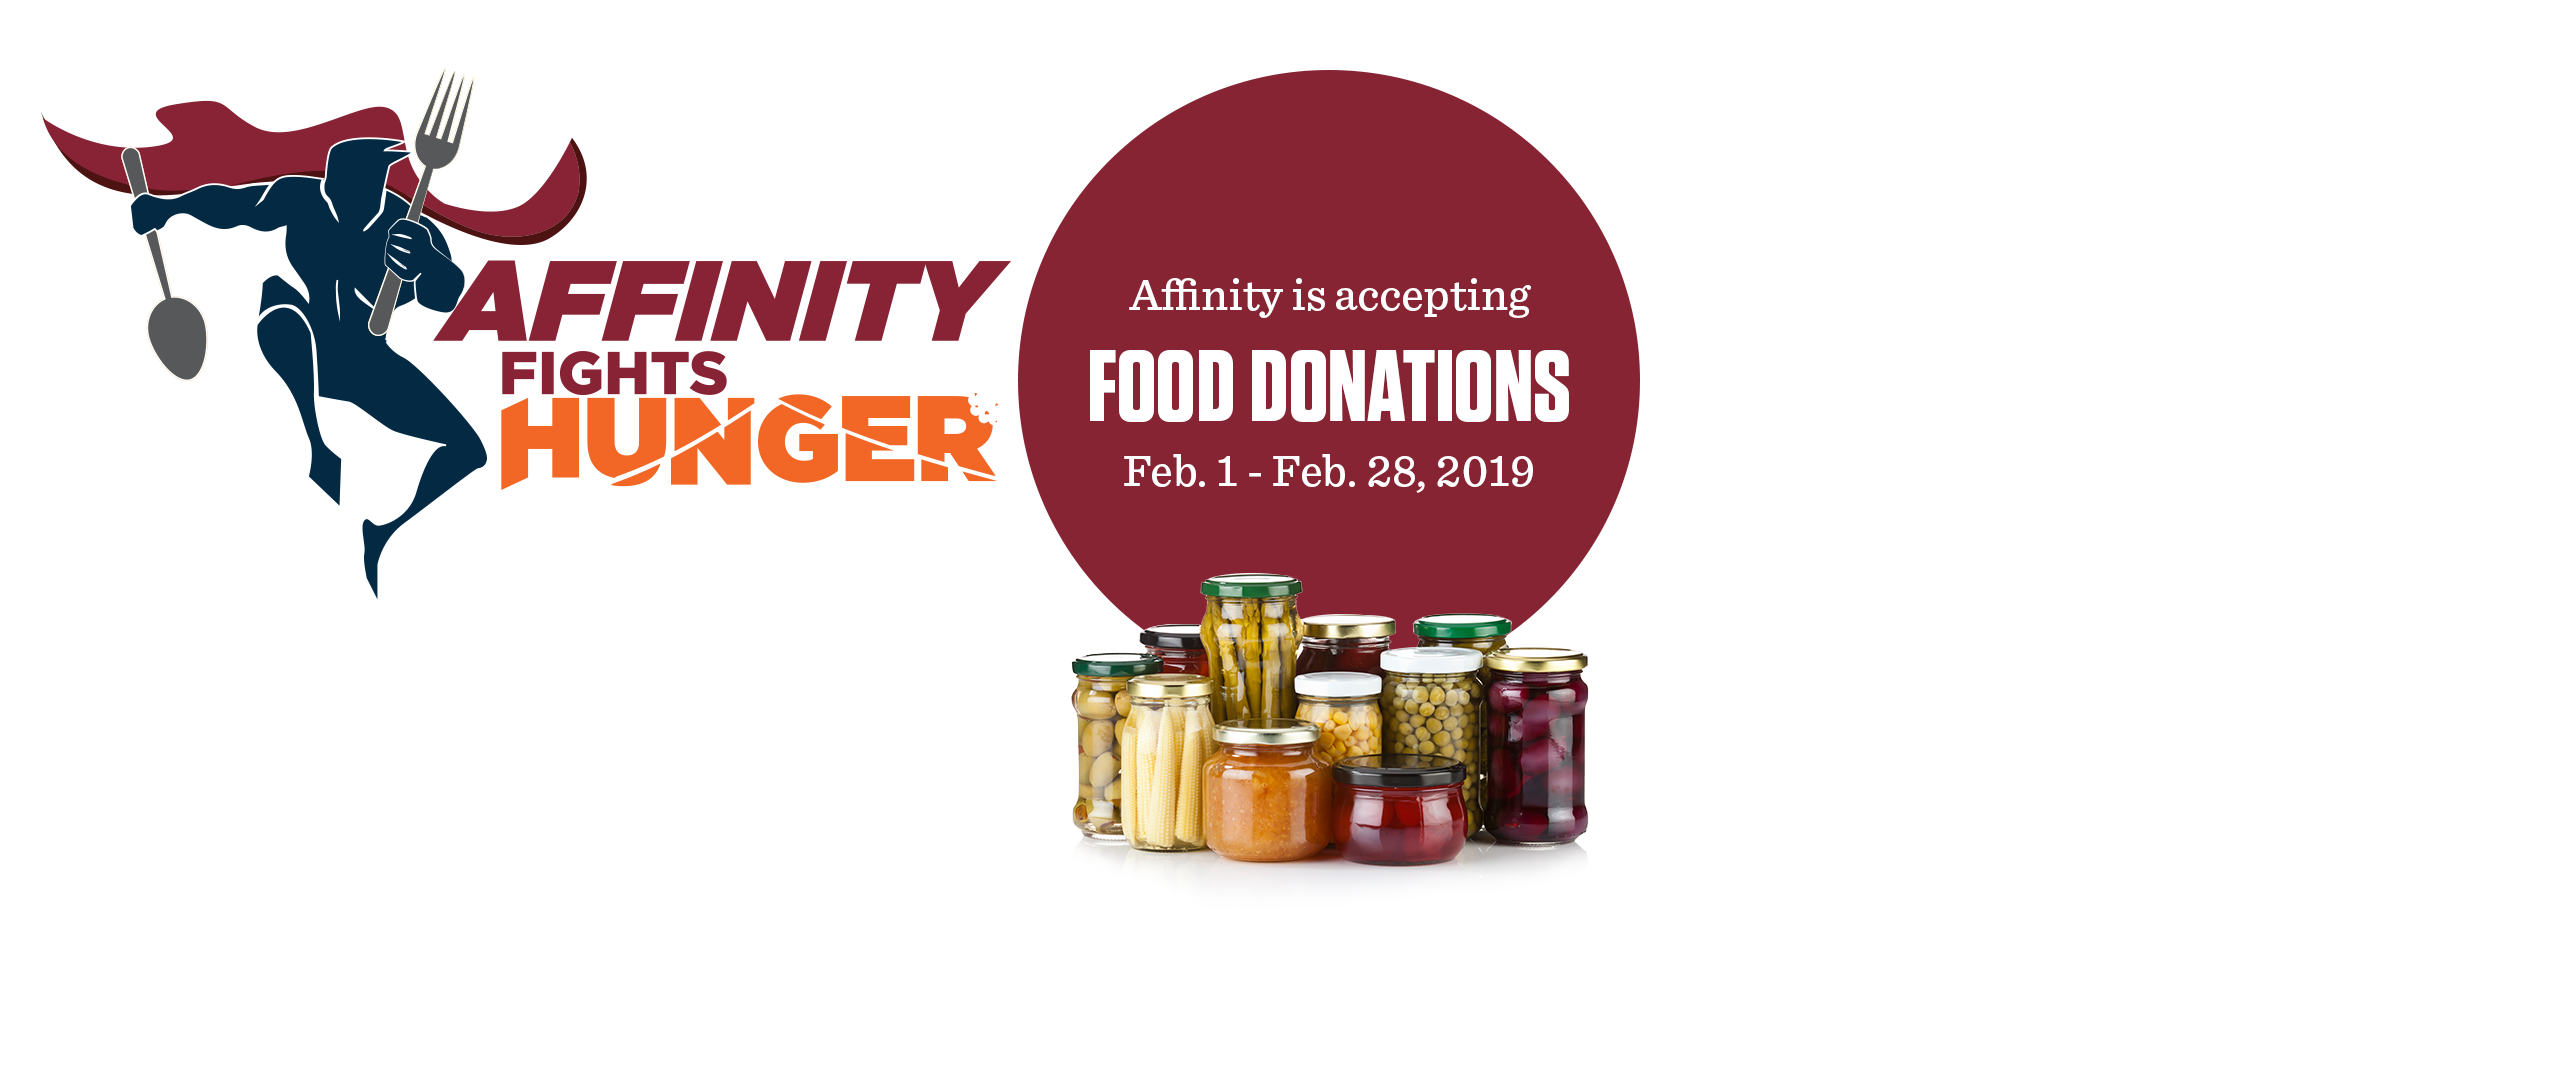 Affinity Fights Hunger